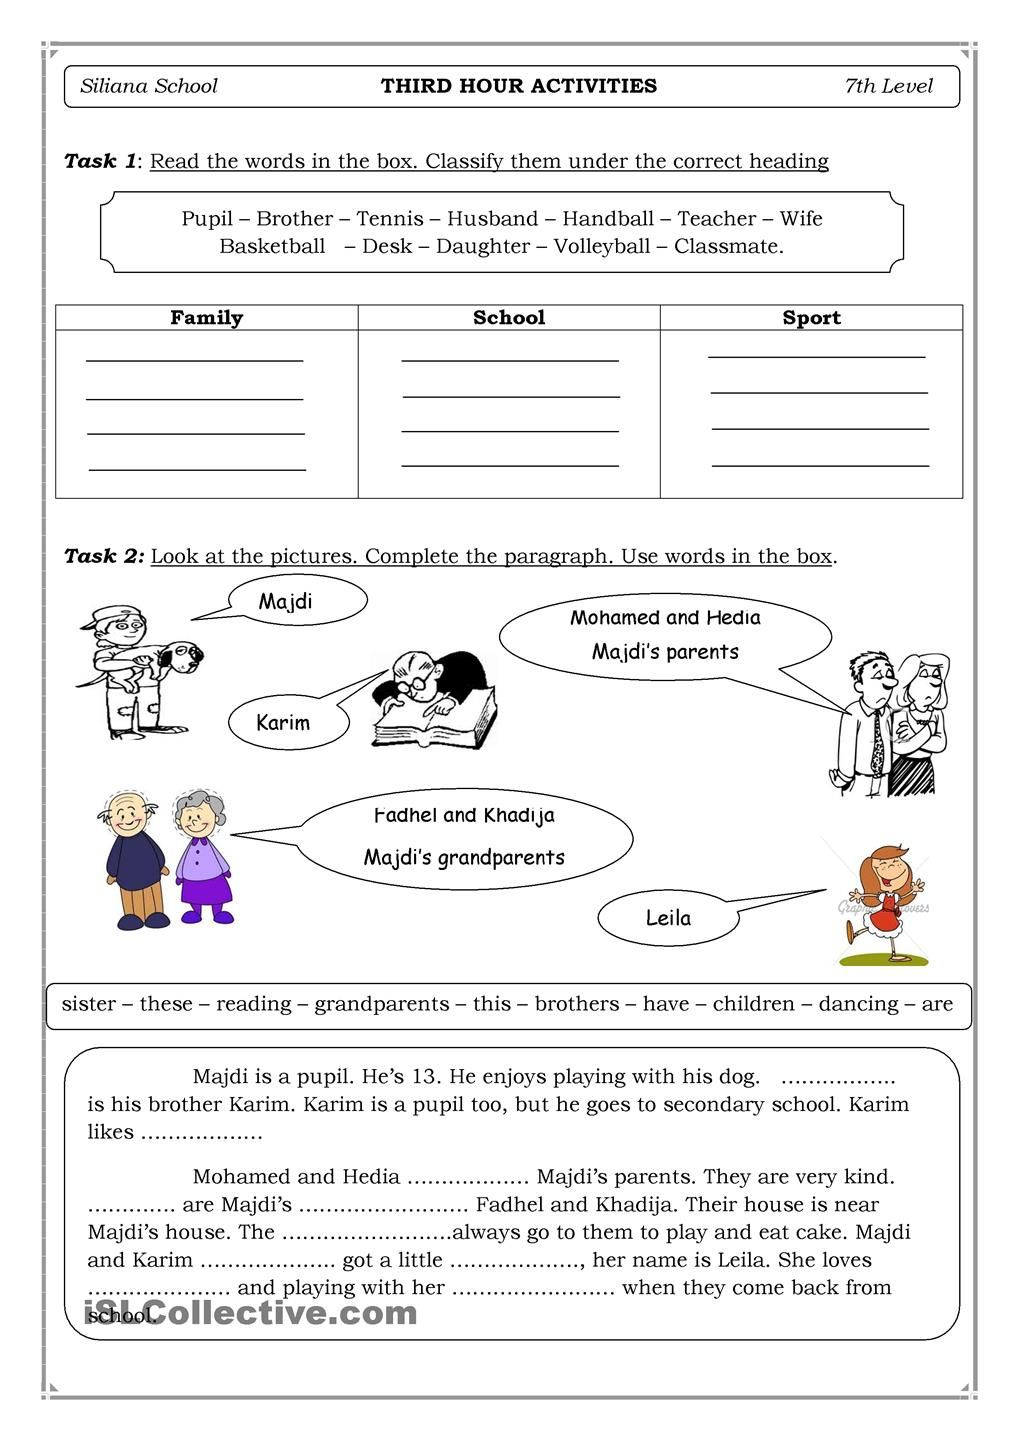 030205007s.jpg (500×708) (With images) 1st grade